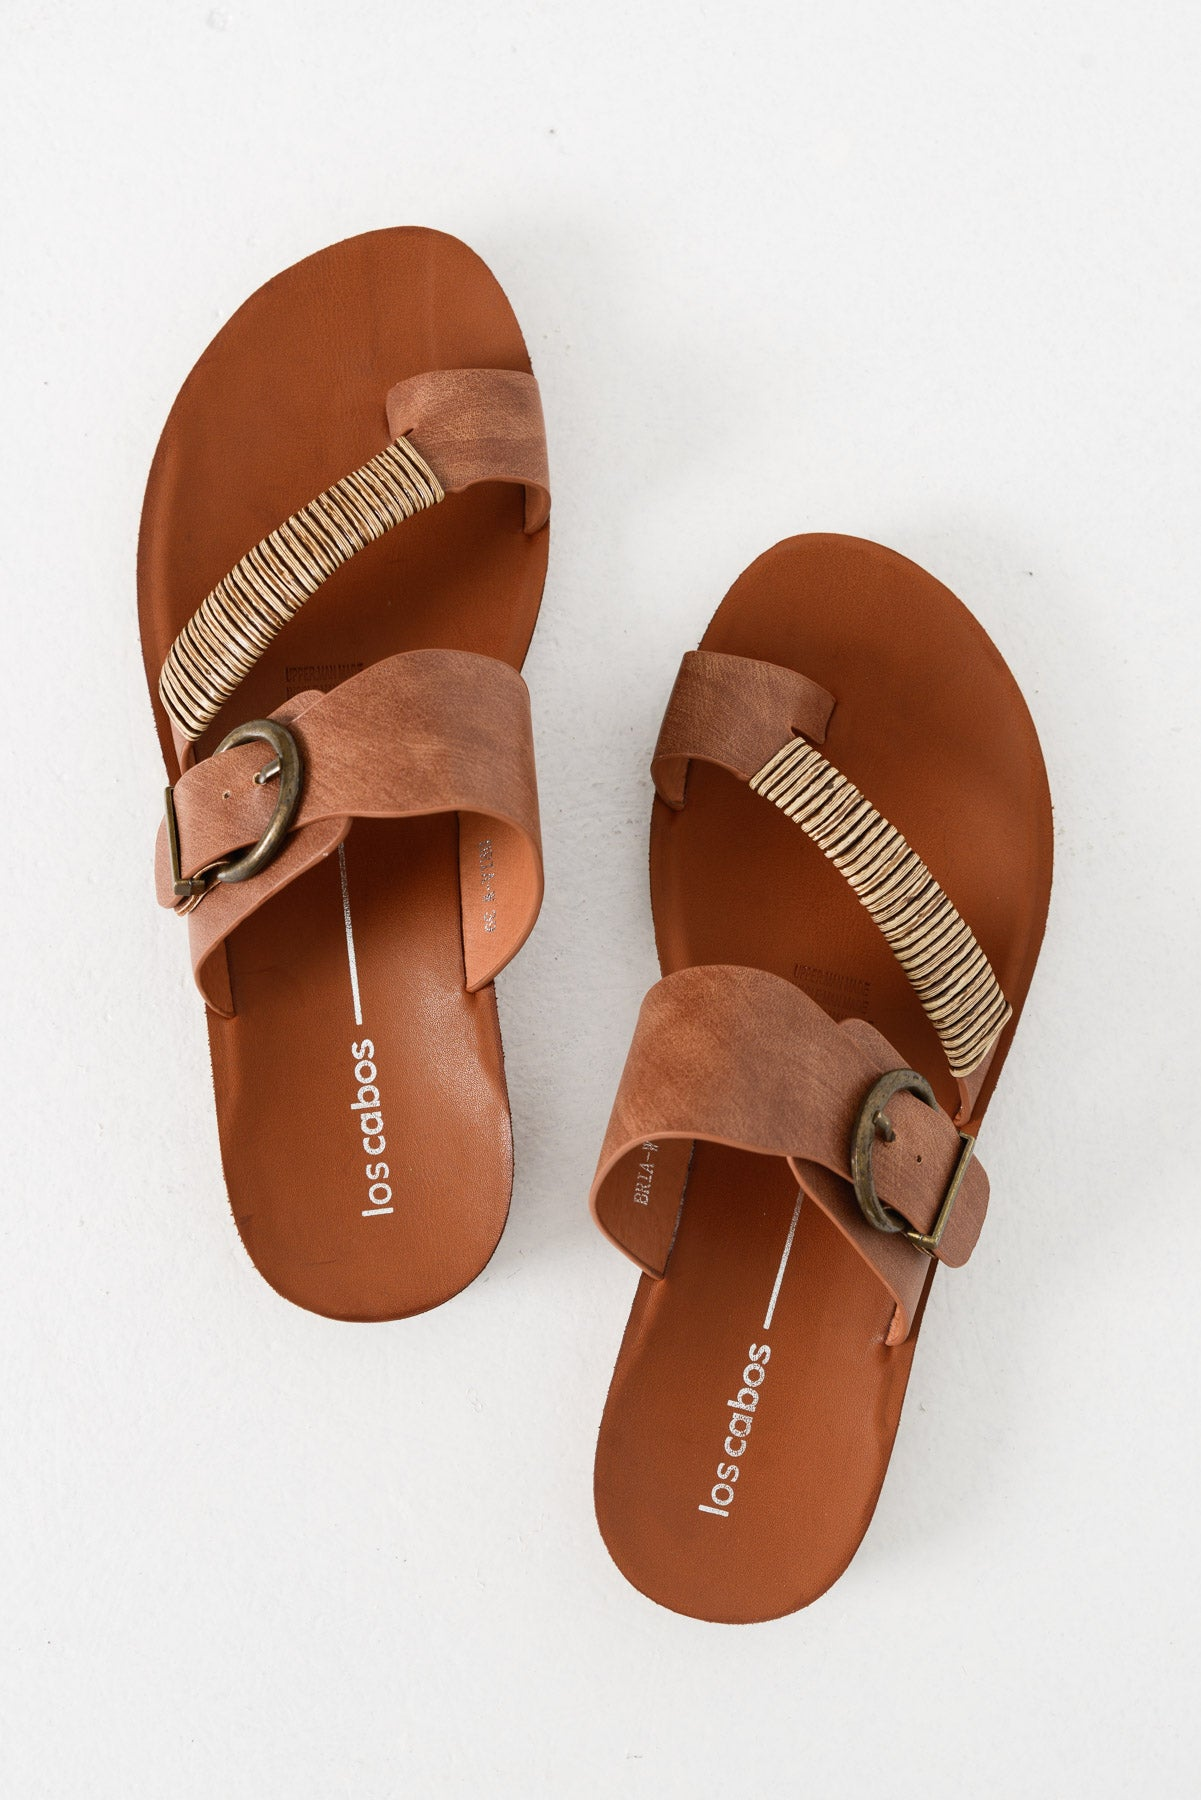 Bria Brandy Sandals - Blue Bungalow